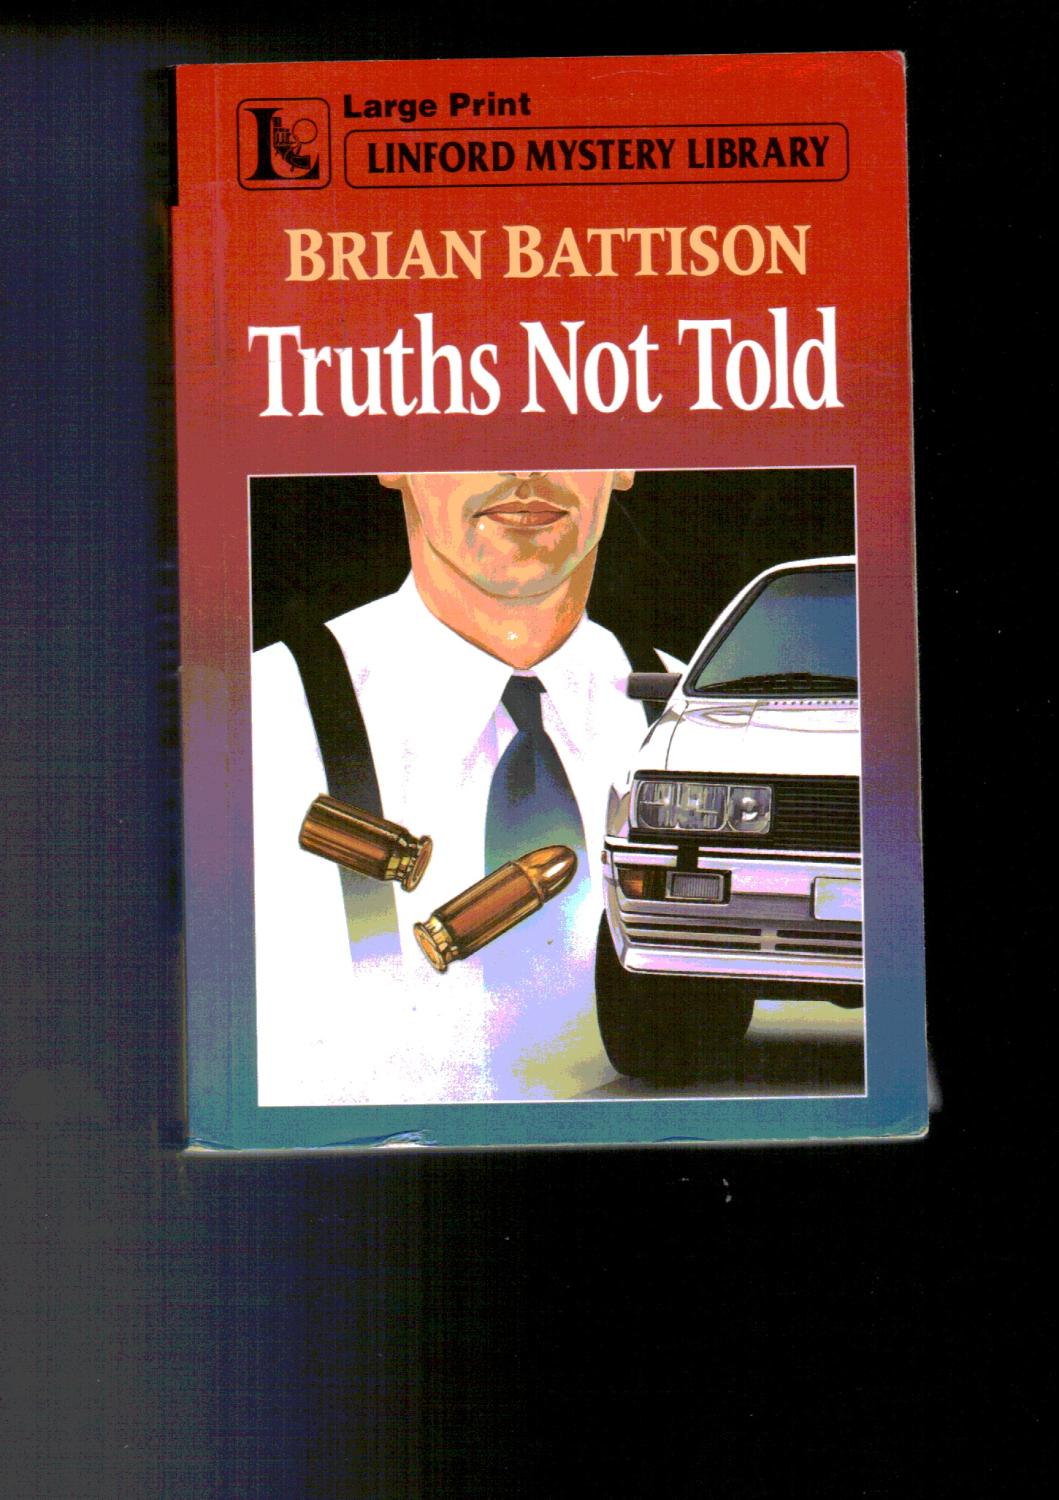 9780708952931 - Battison, Brian: Truths Not Told - 书